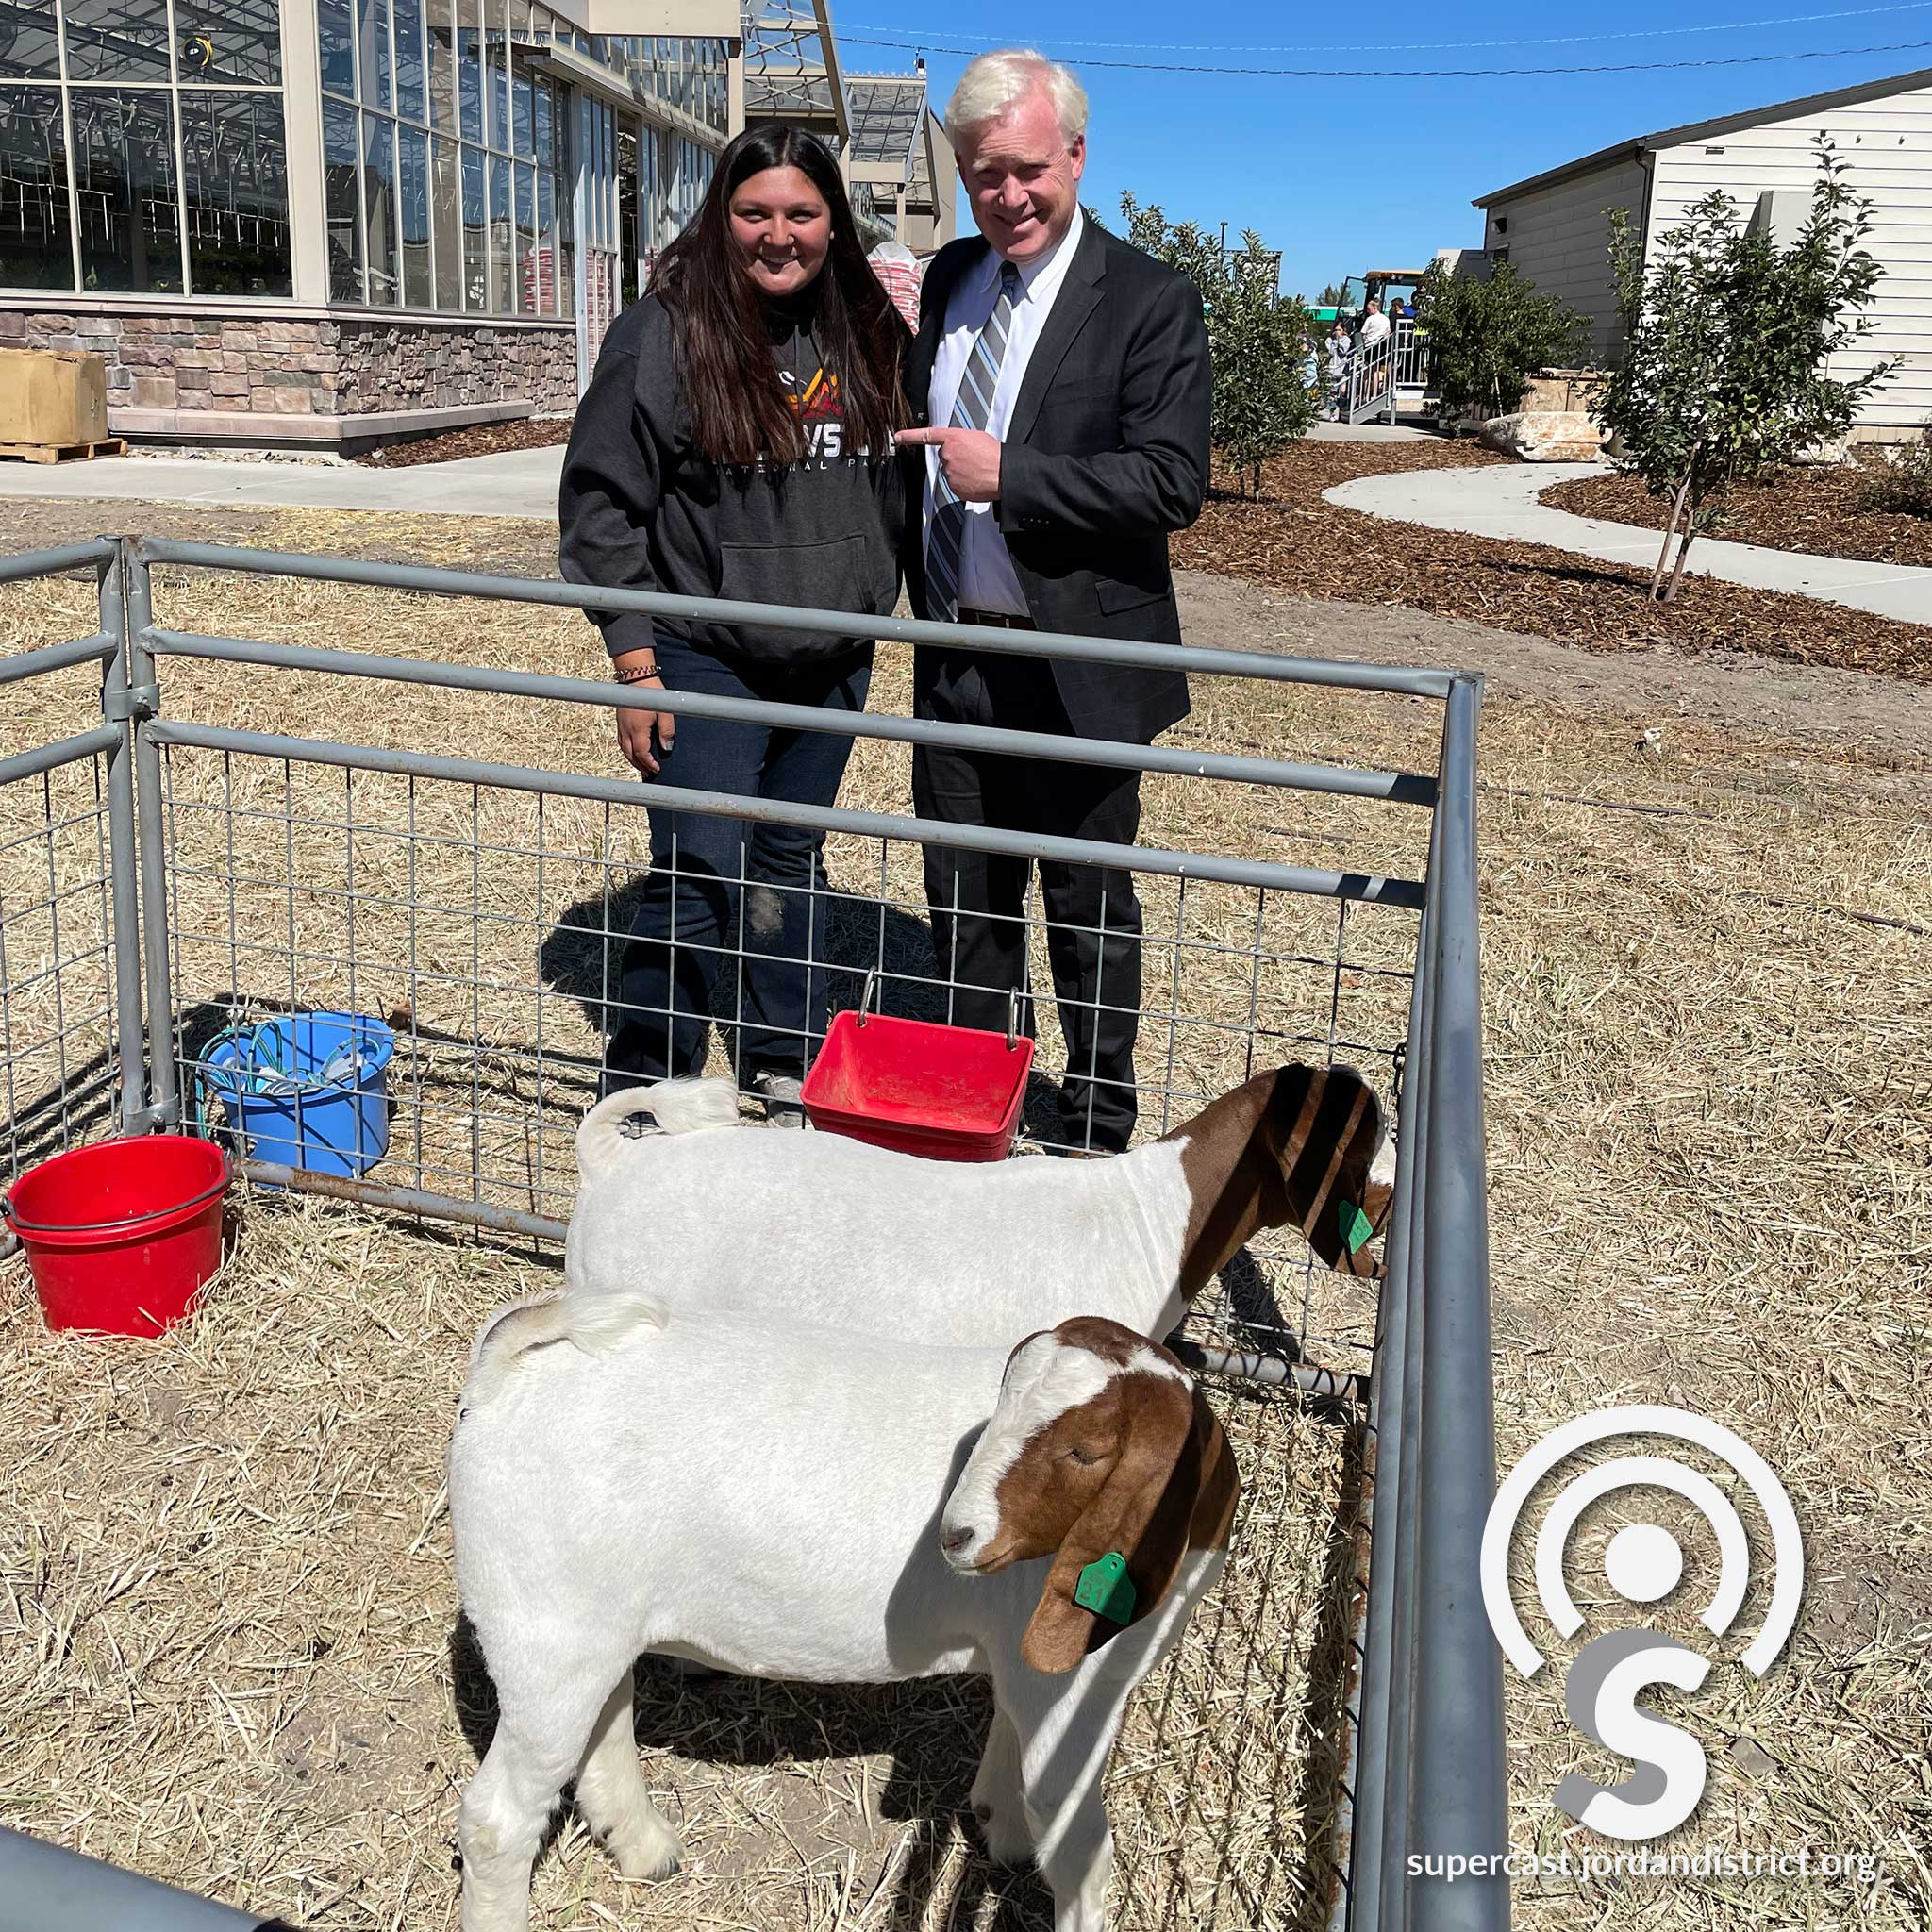 Superintendent checks out the goats